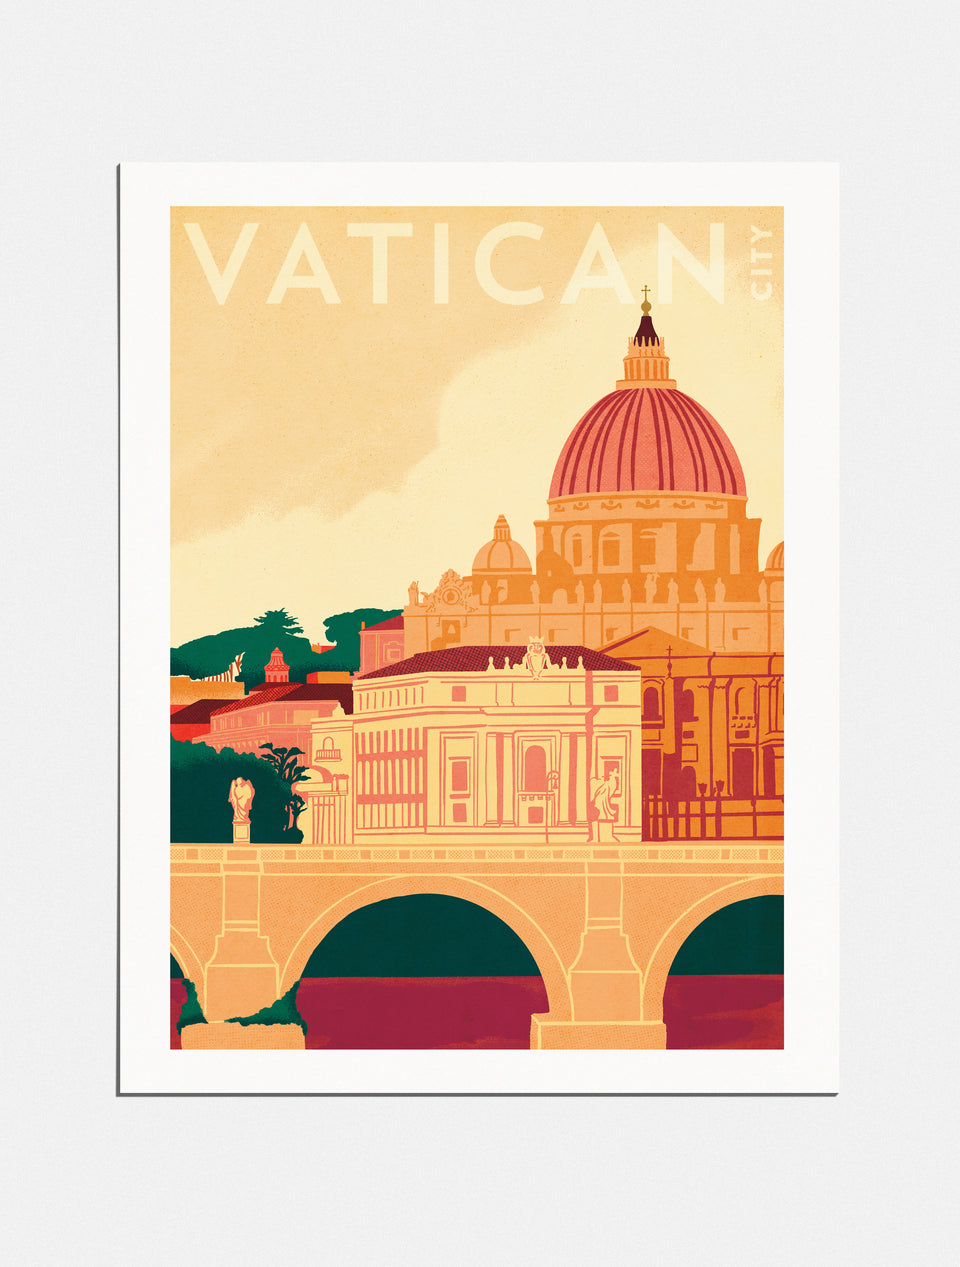 Premium Poster: Pilgrimage to Vatican City, 18x24